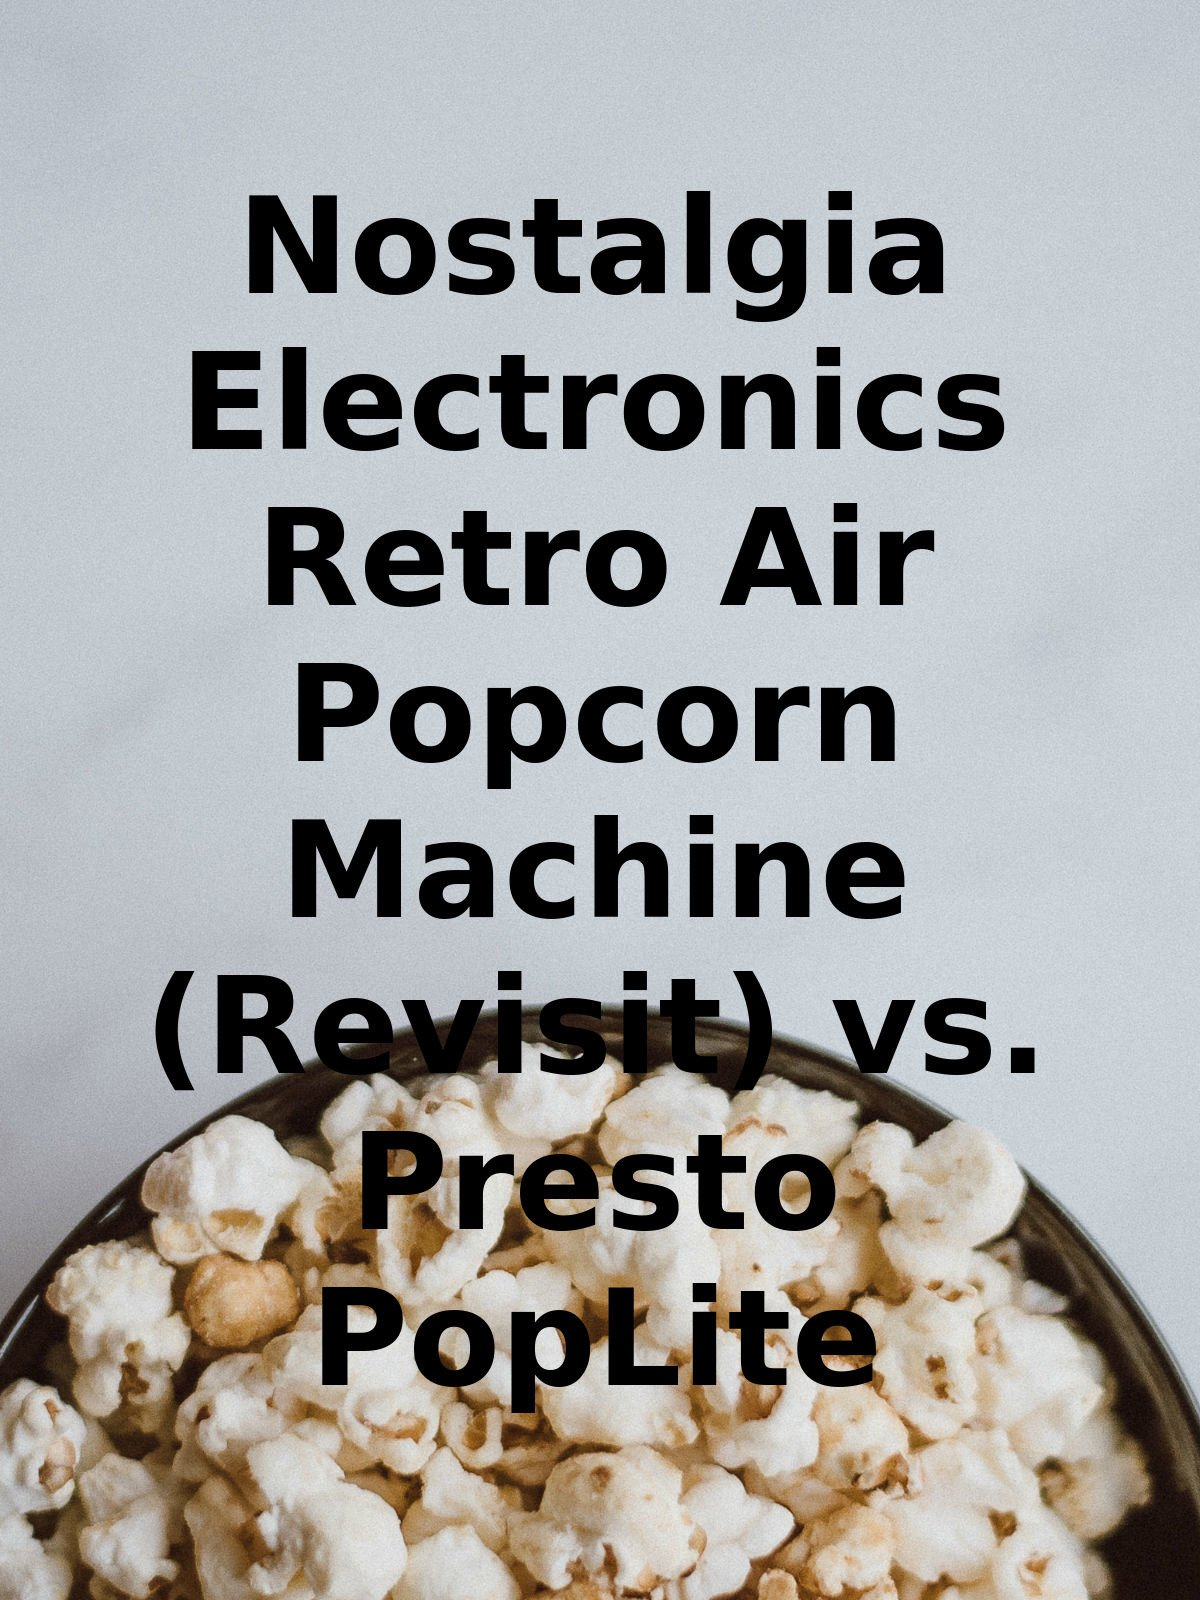 Review: Nostalgia Electronics Retro Air Popcorn Machine (Revisit) vs. Presto PopLite on Amazon Prime Instant Video UK